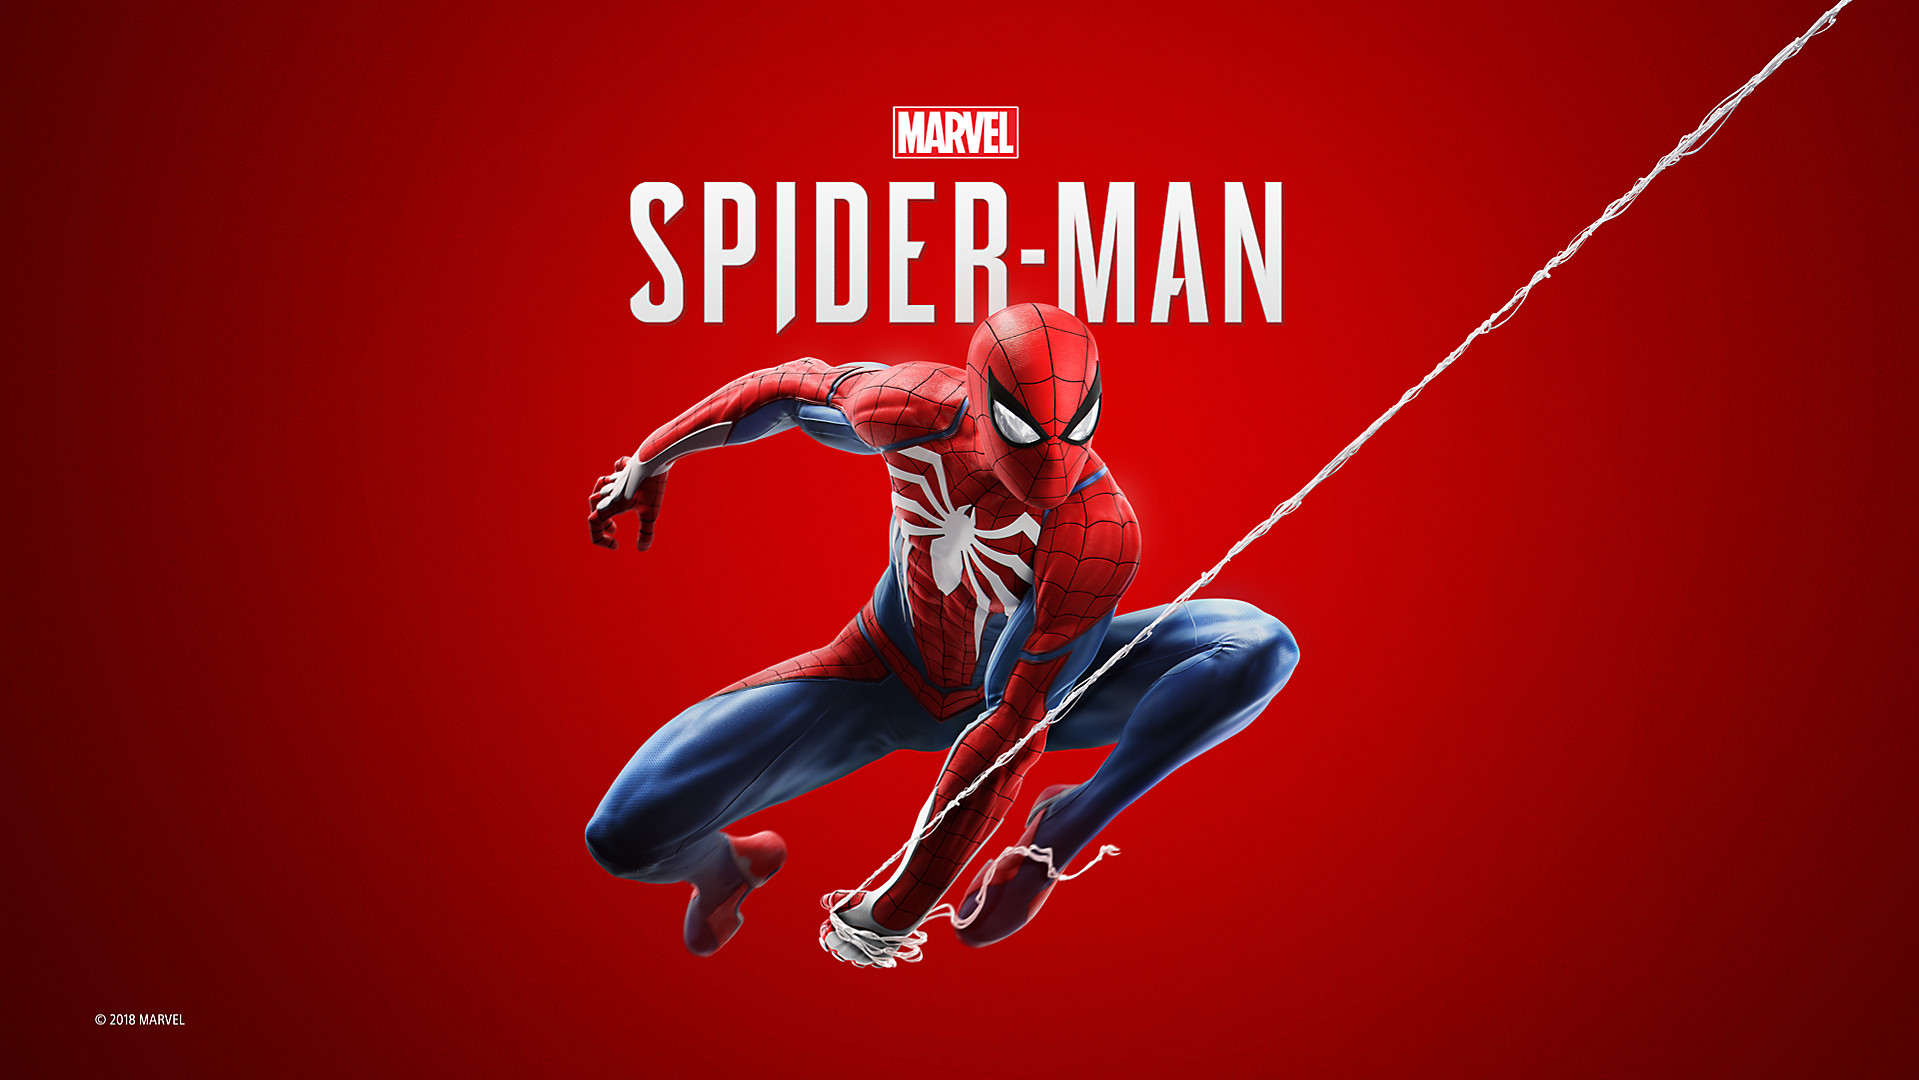 Marvel's Spider-Man is the best Peter Parker experience ever, and a nearly flawless game.